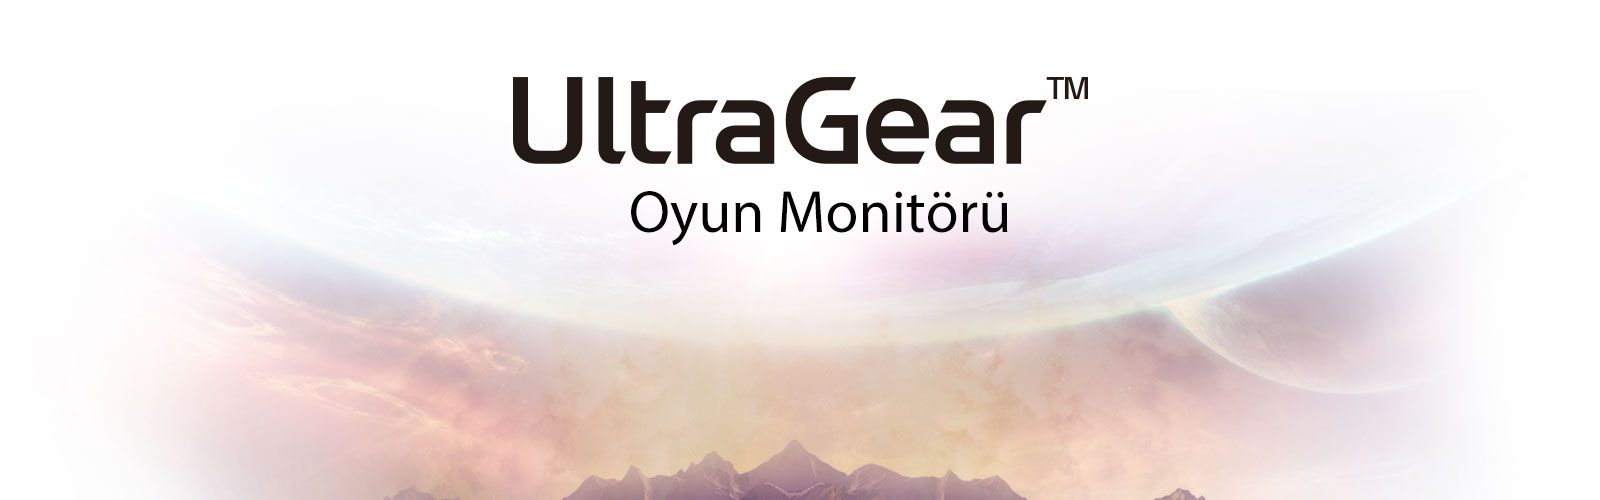 Global_UltraGear_2018_Feature_07_1_ProductLineup_D1